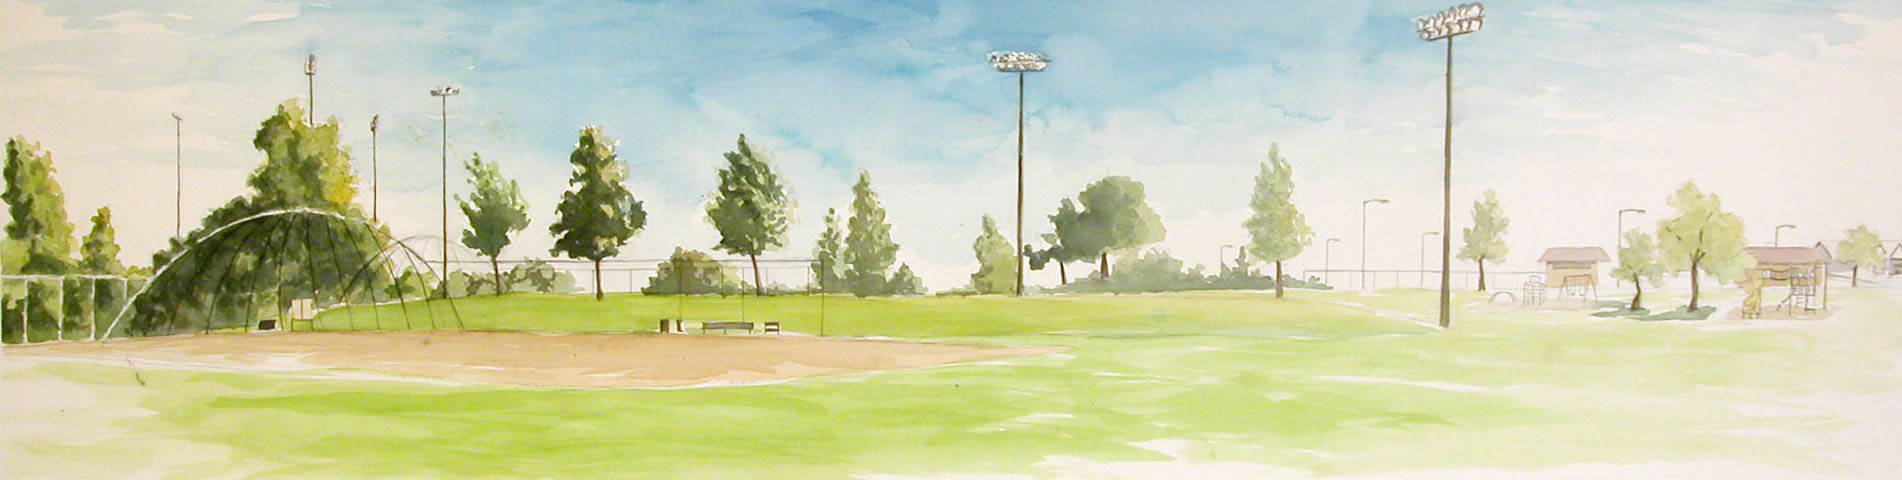 Baseball Field, 2003, watercolor, 18 x 62 in.